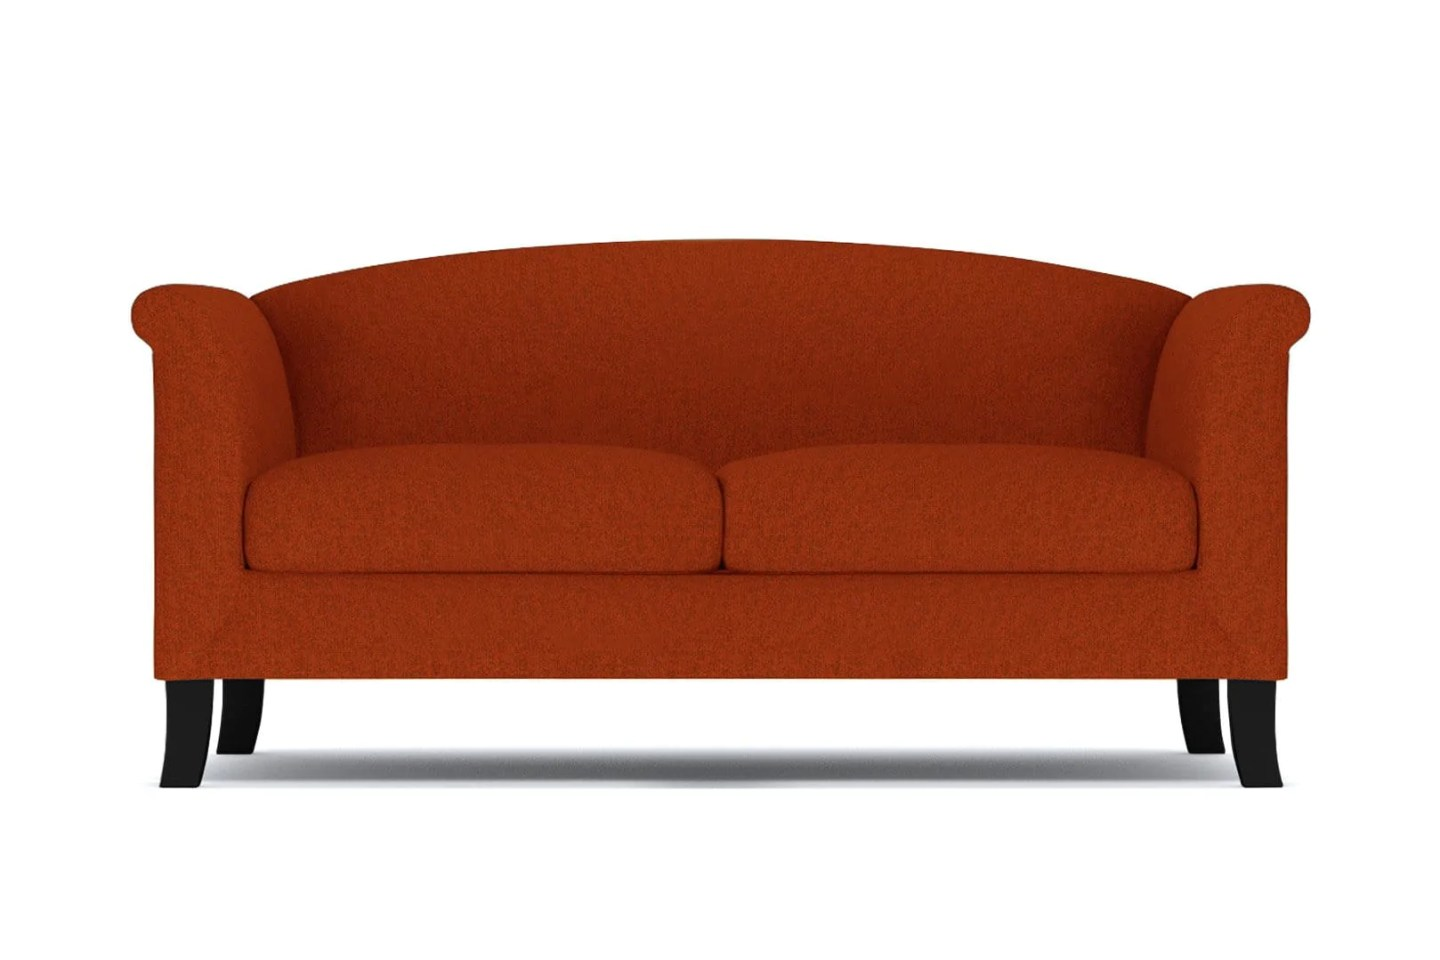 Albright Apartment Size Sofa -  -  Small Space Modern Couch Made in the USA - Sold by Apt2B